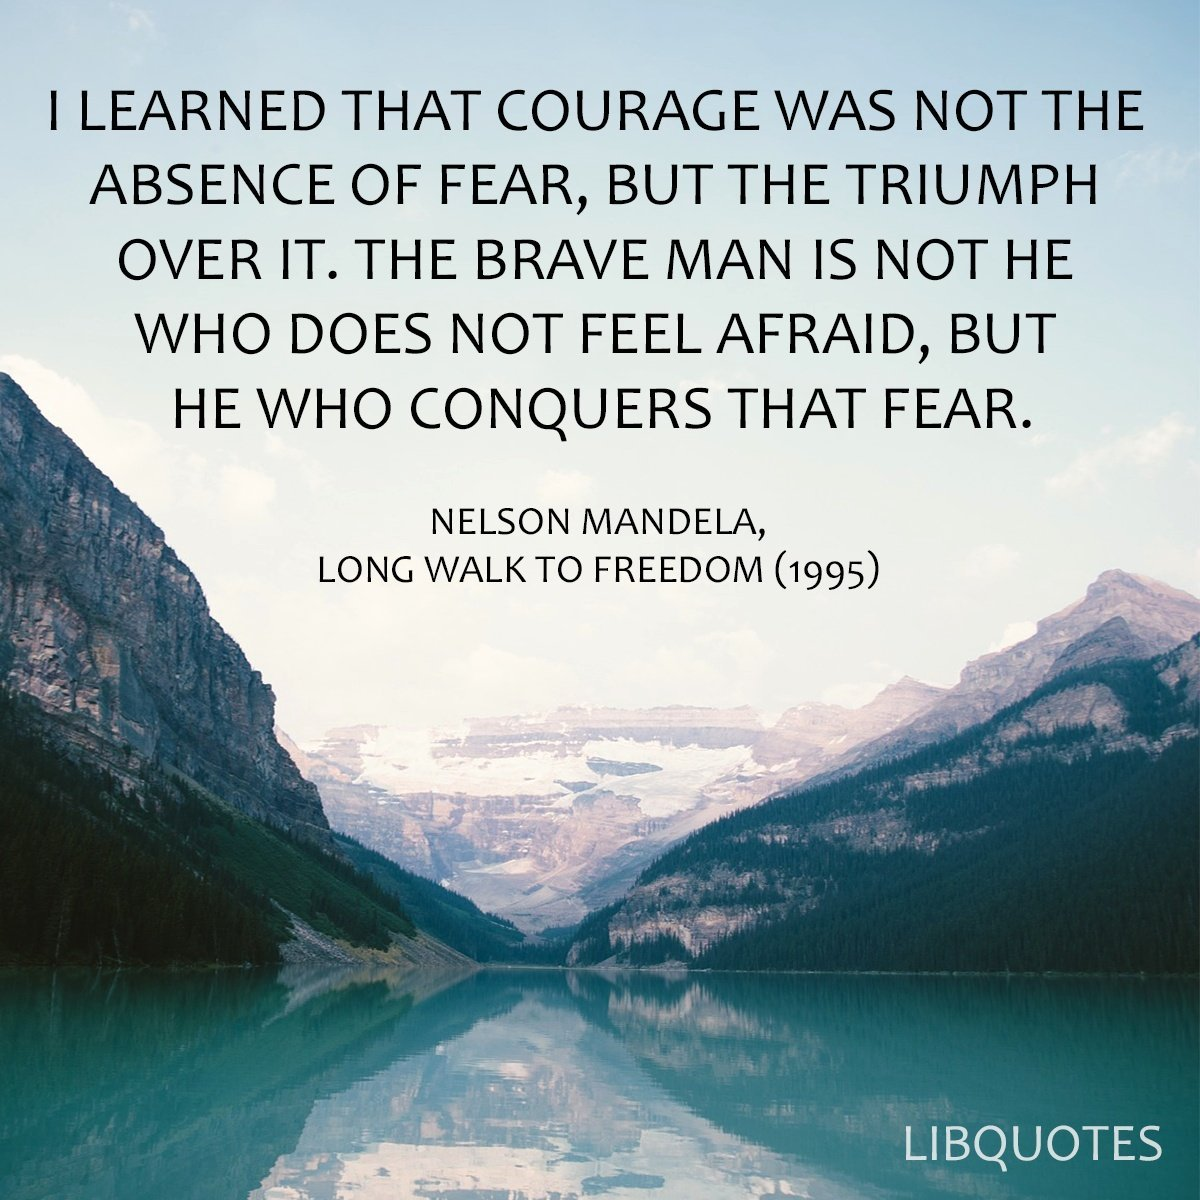 I learned that courage was not the absence of fear, but the triumph over it. The brave man is not he who does not feel afraid, but he who conquers that fear.